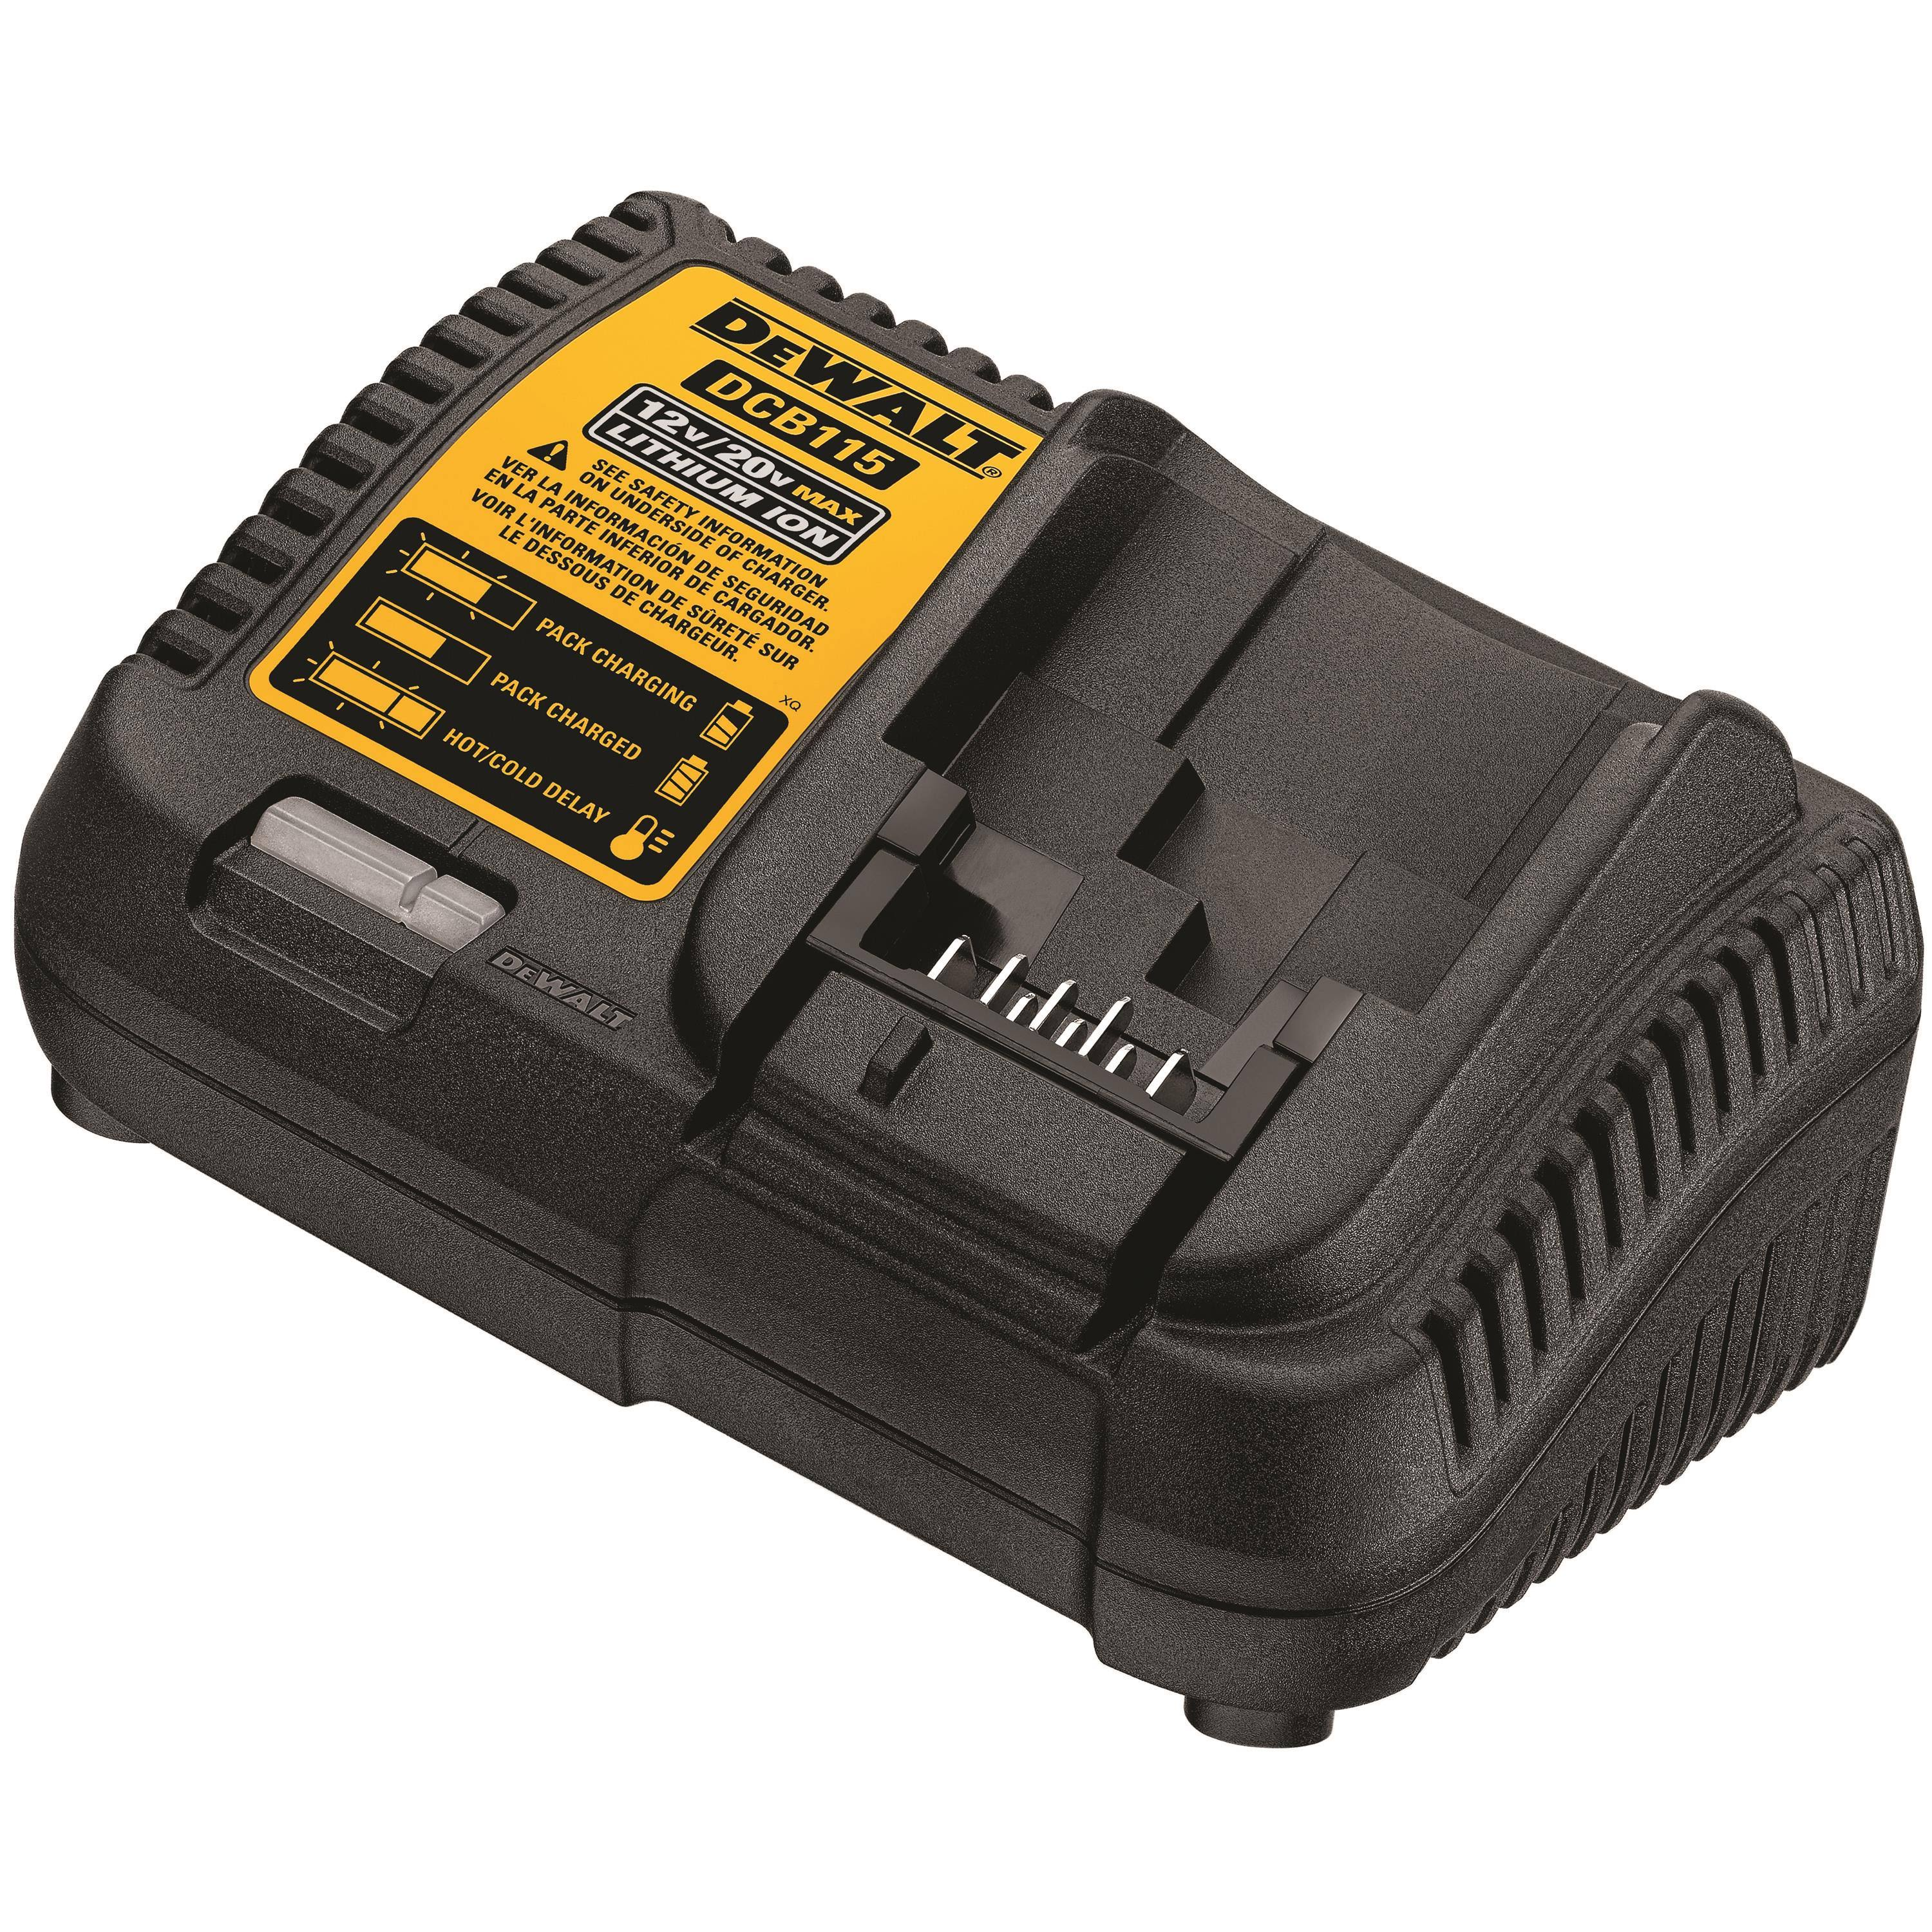 Dewalt Max Power Tool Battery Charger - 20V, Lithium Ion